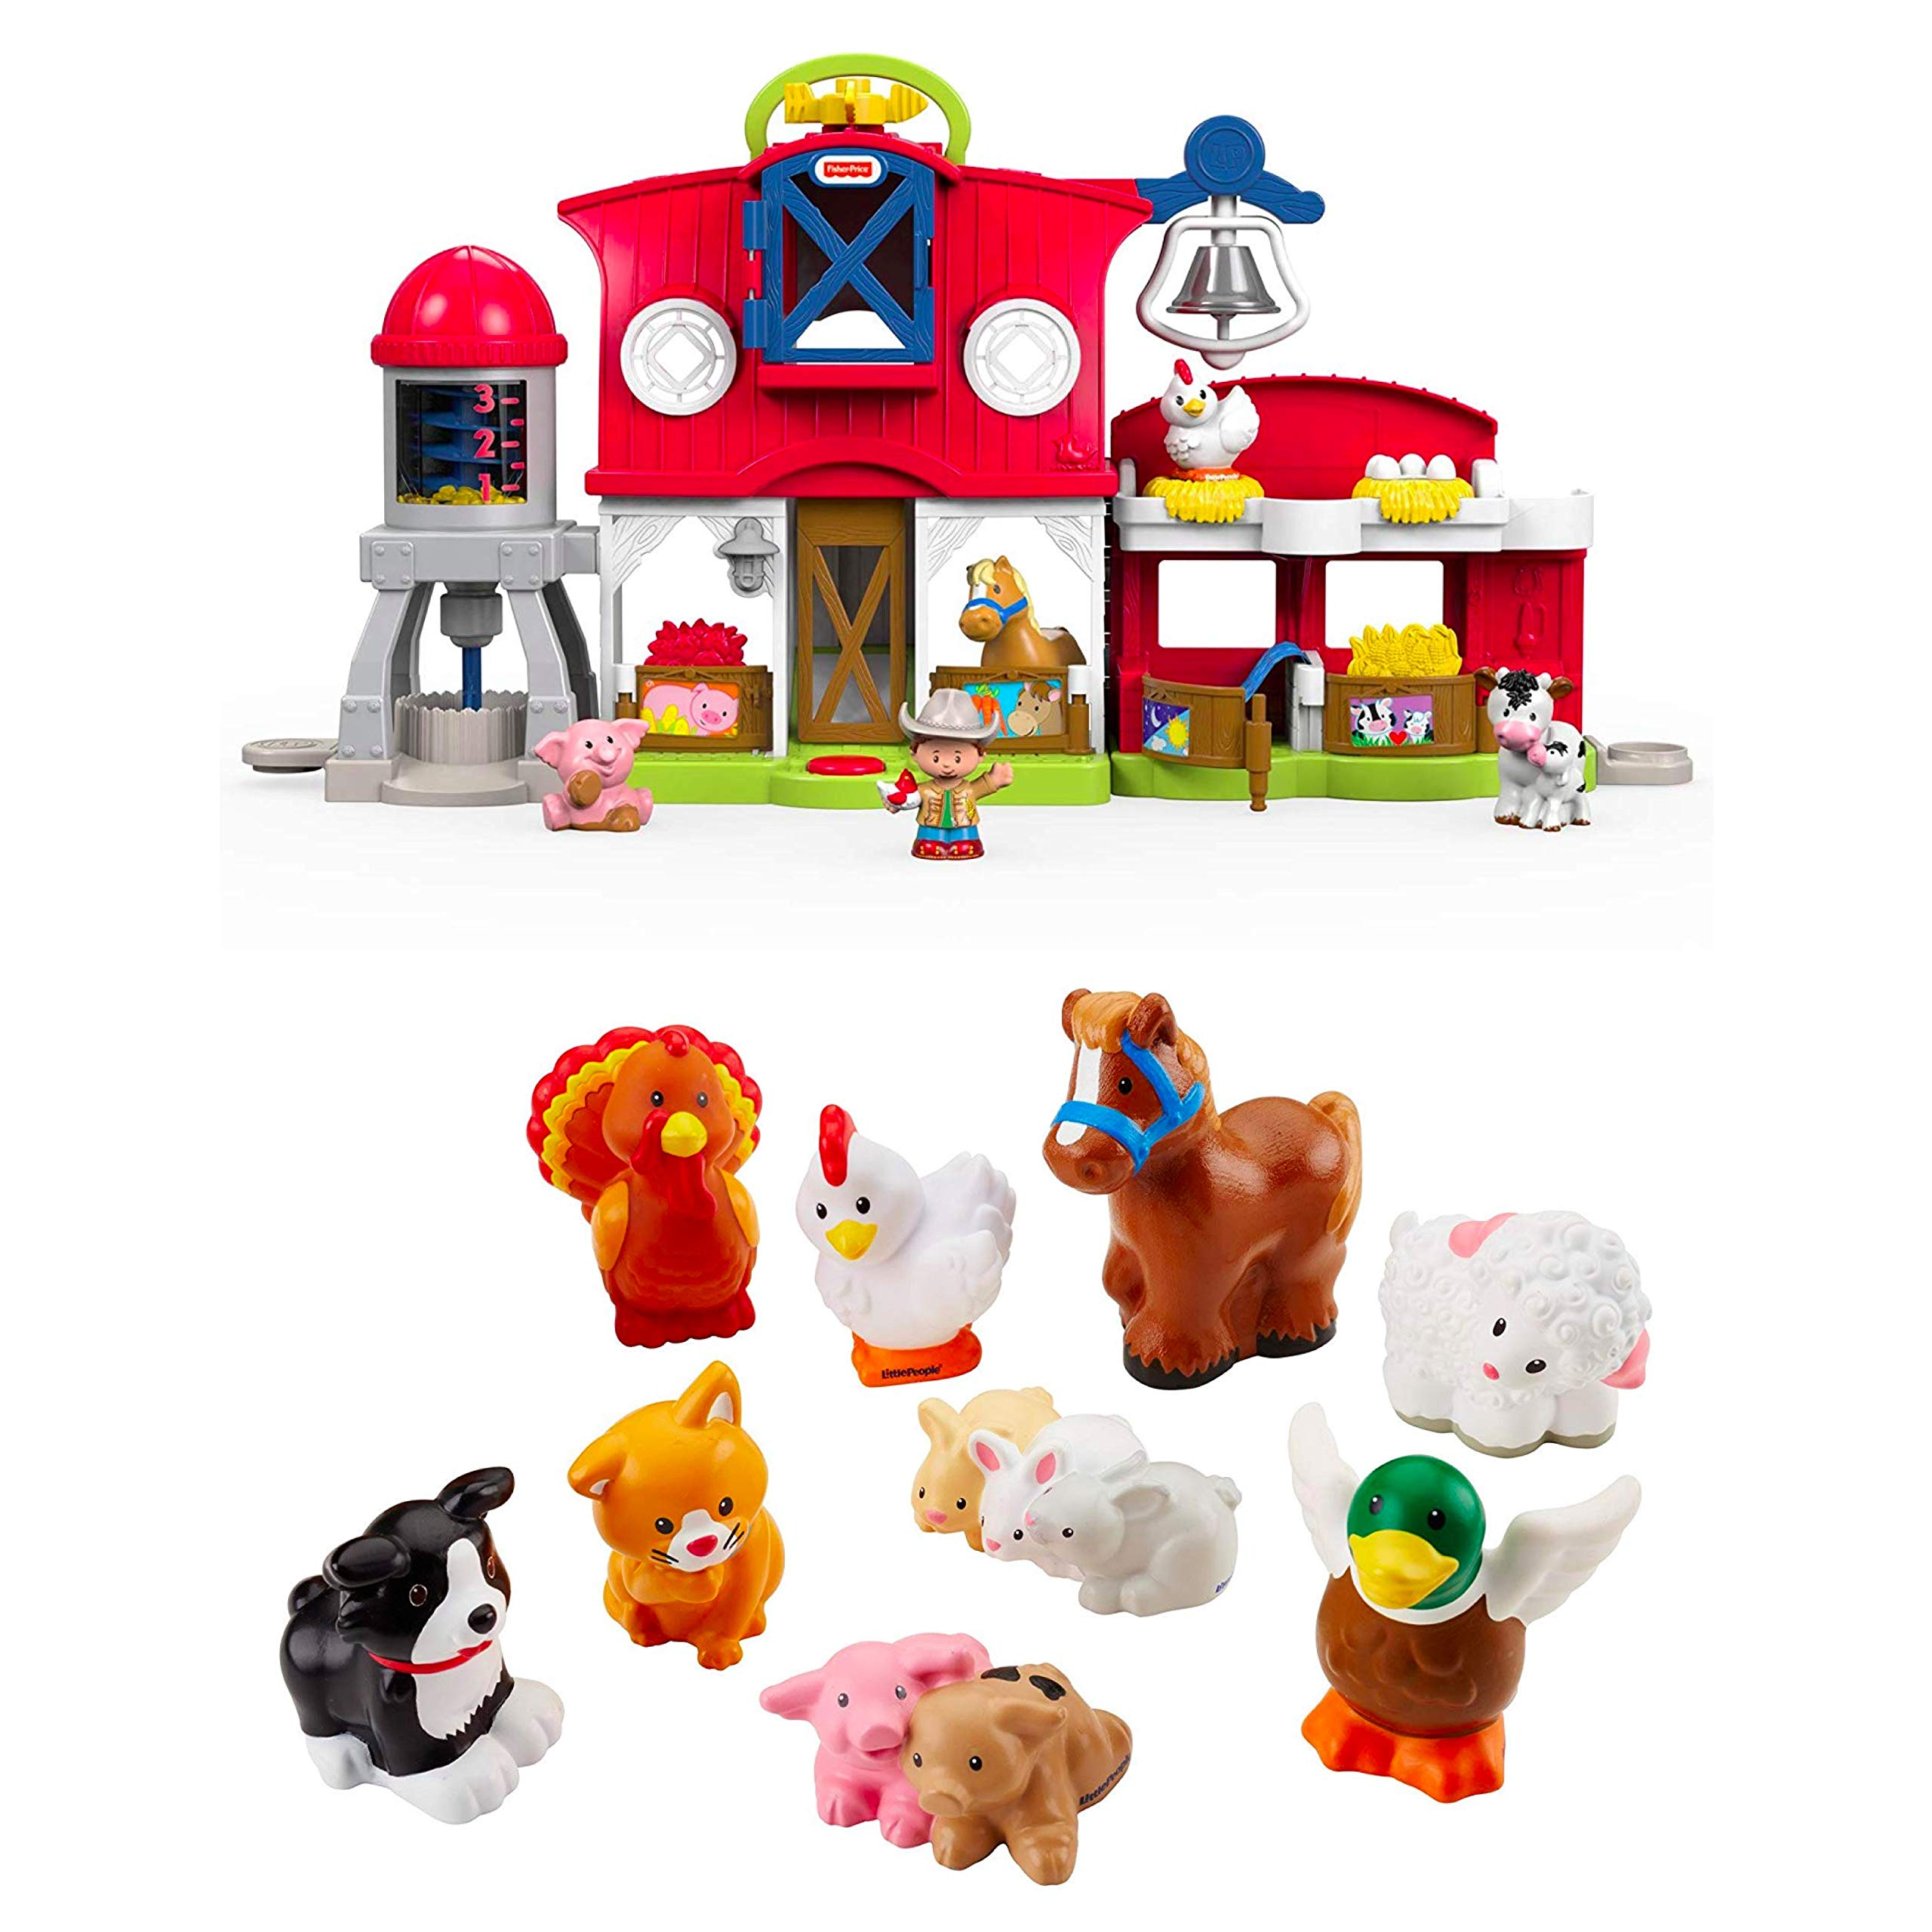 Fisher-Price Little People Caring for Animals Farm Set Bundled Little People Farm Animal Friends with Baby Bunnies & Piglets